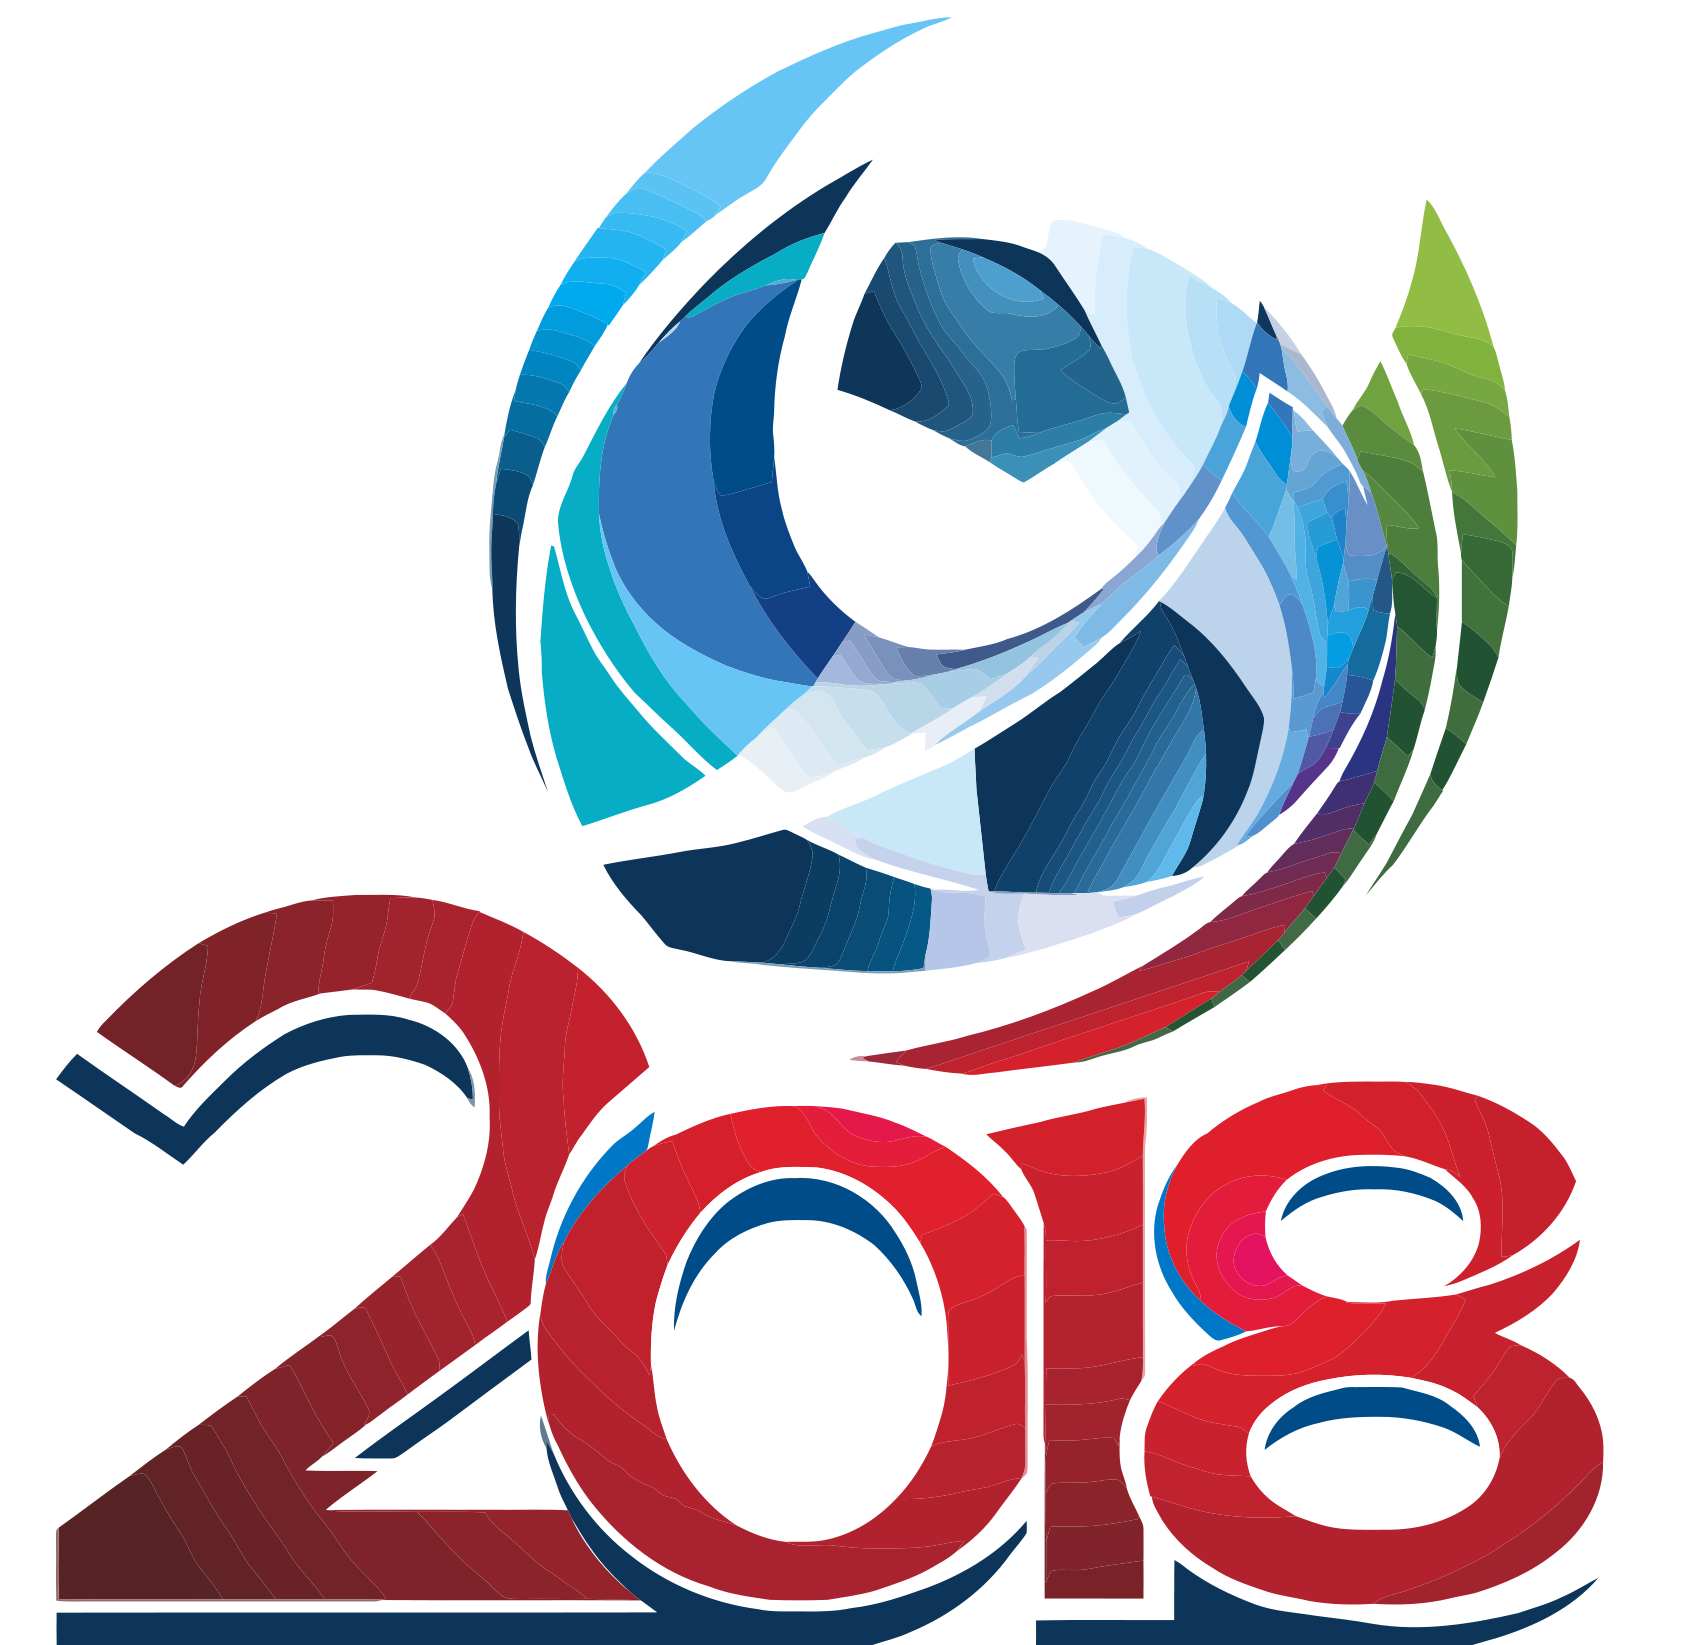 World cup logo 2018 Wallpaper